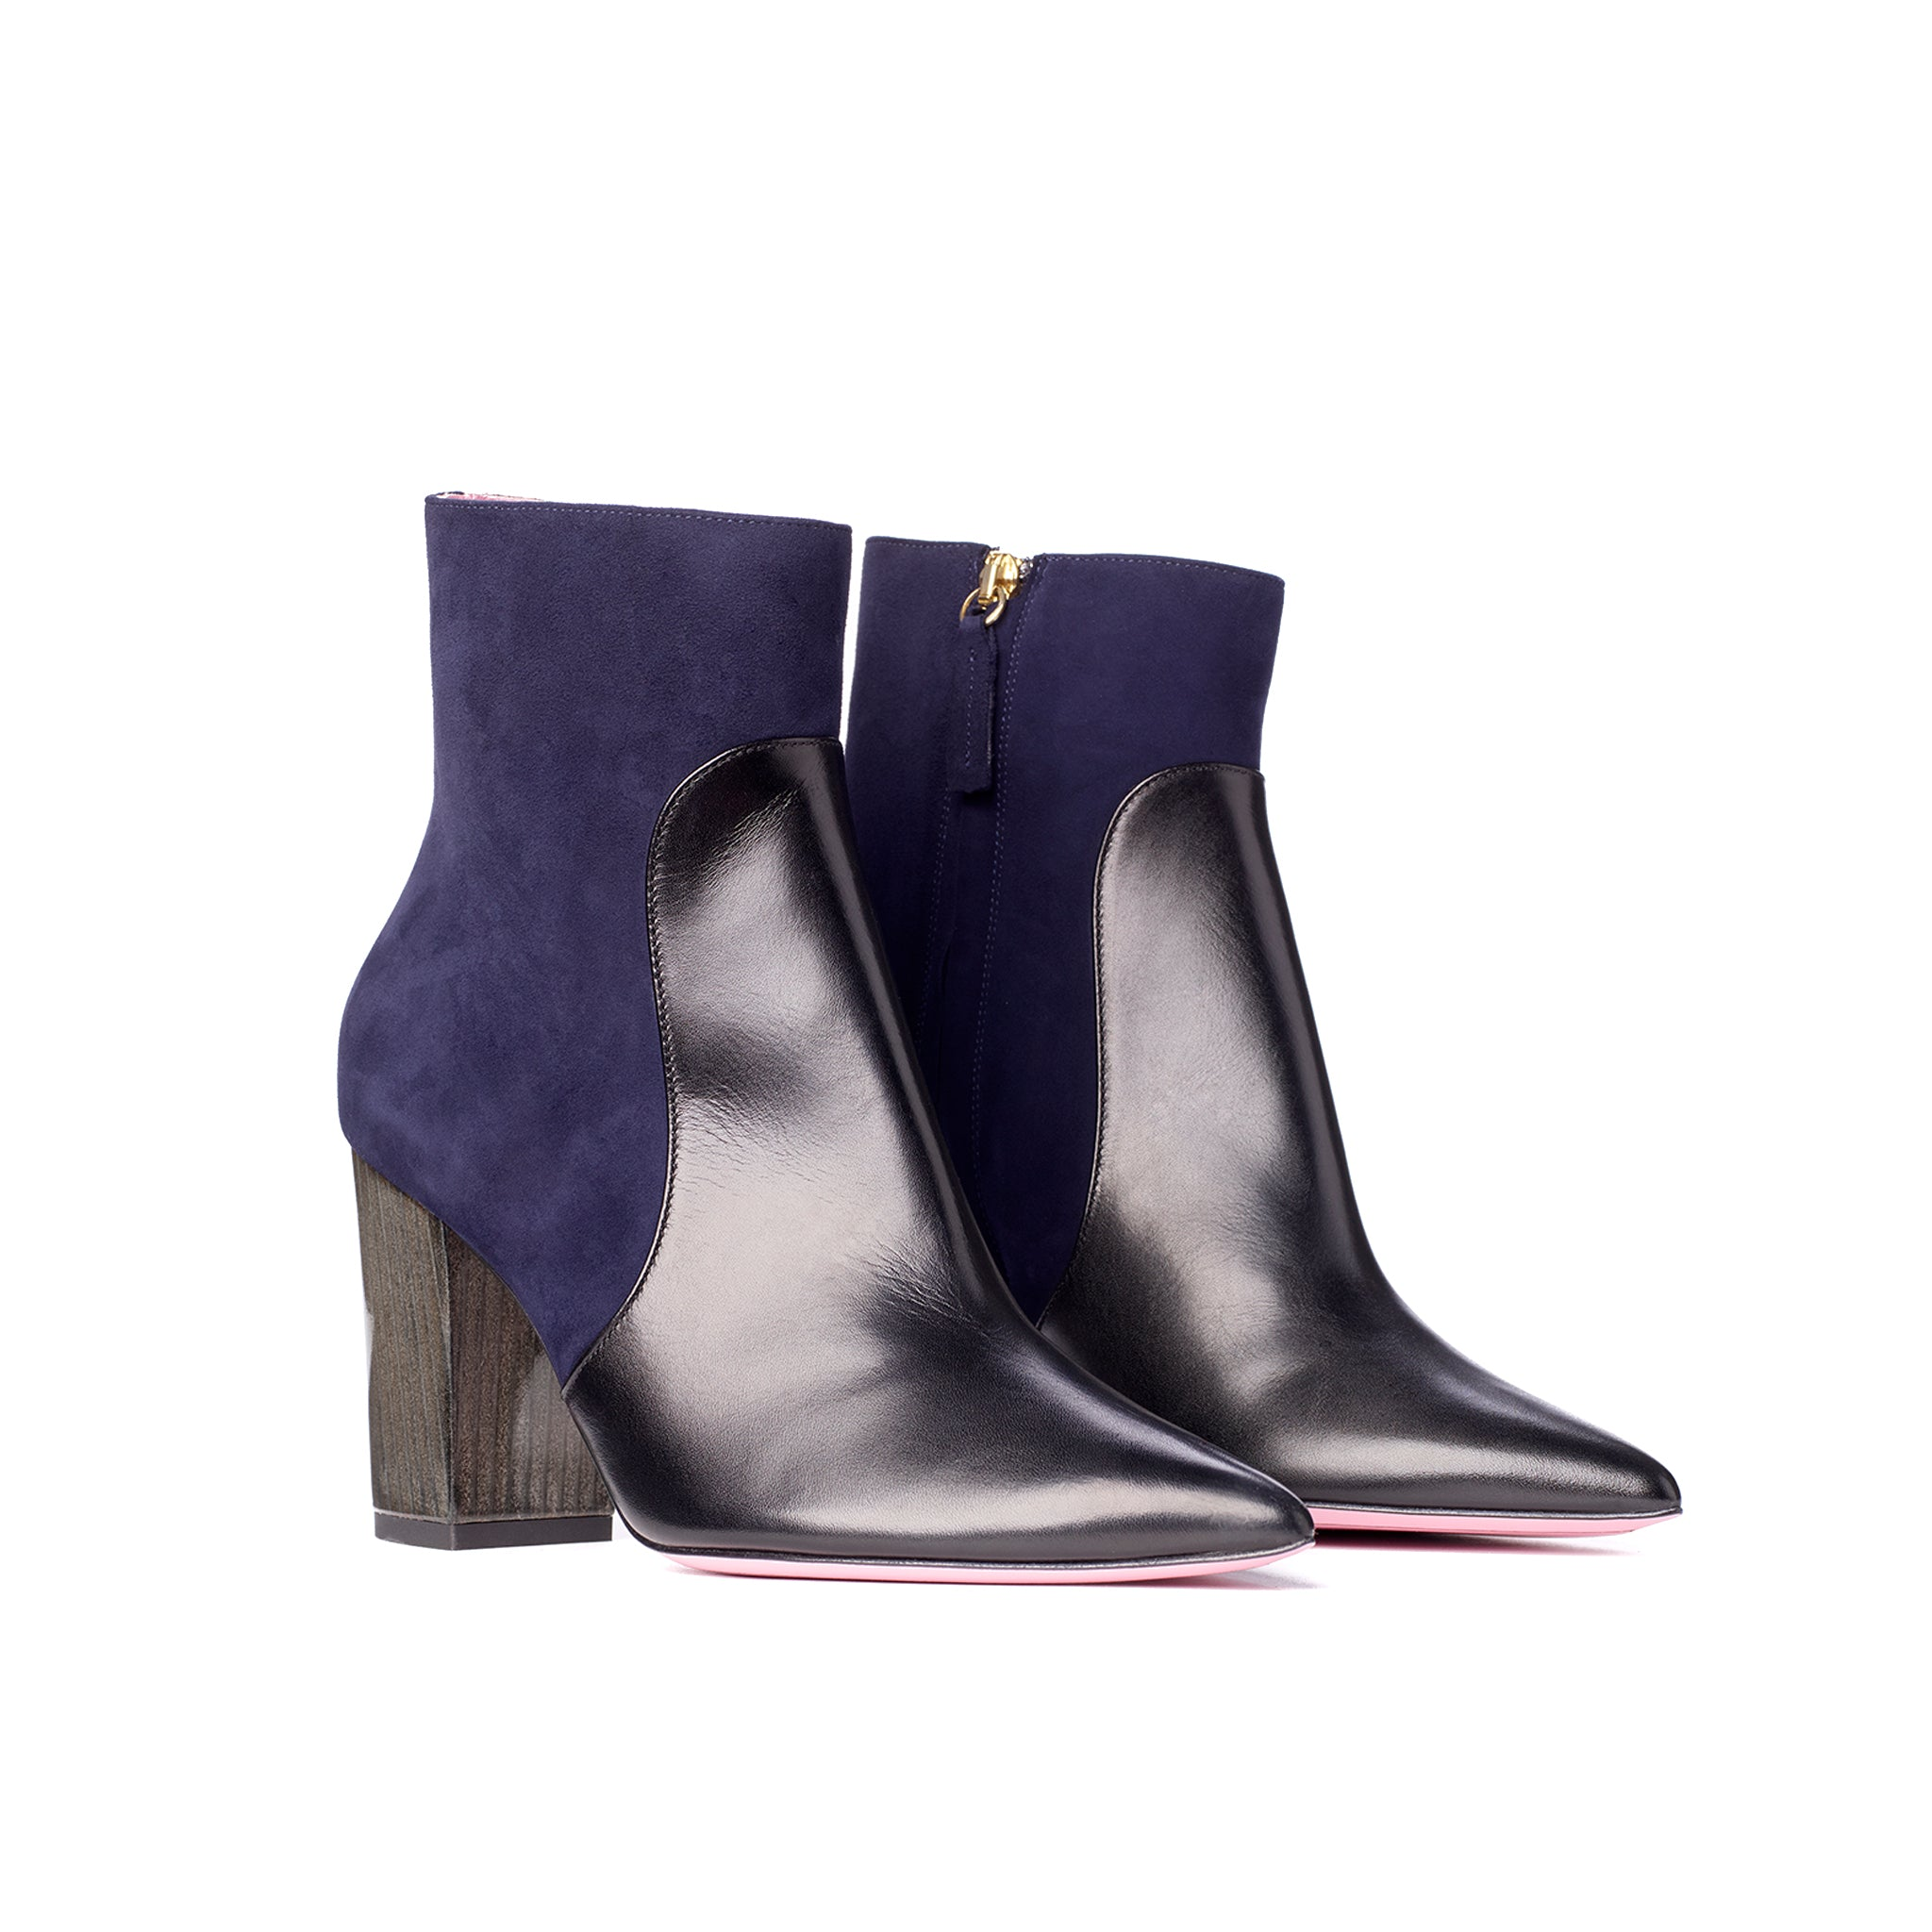 Phare Pointed block heel boot in navy suede and black leather 3/4 view